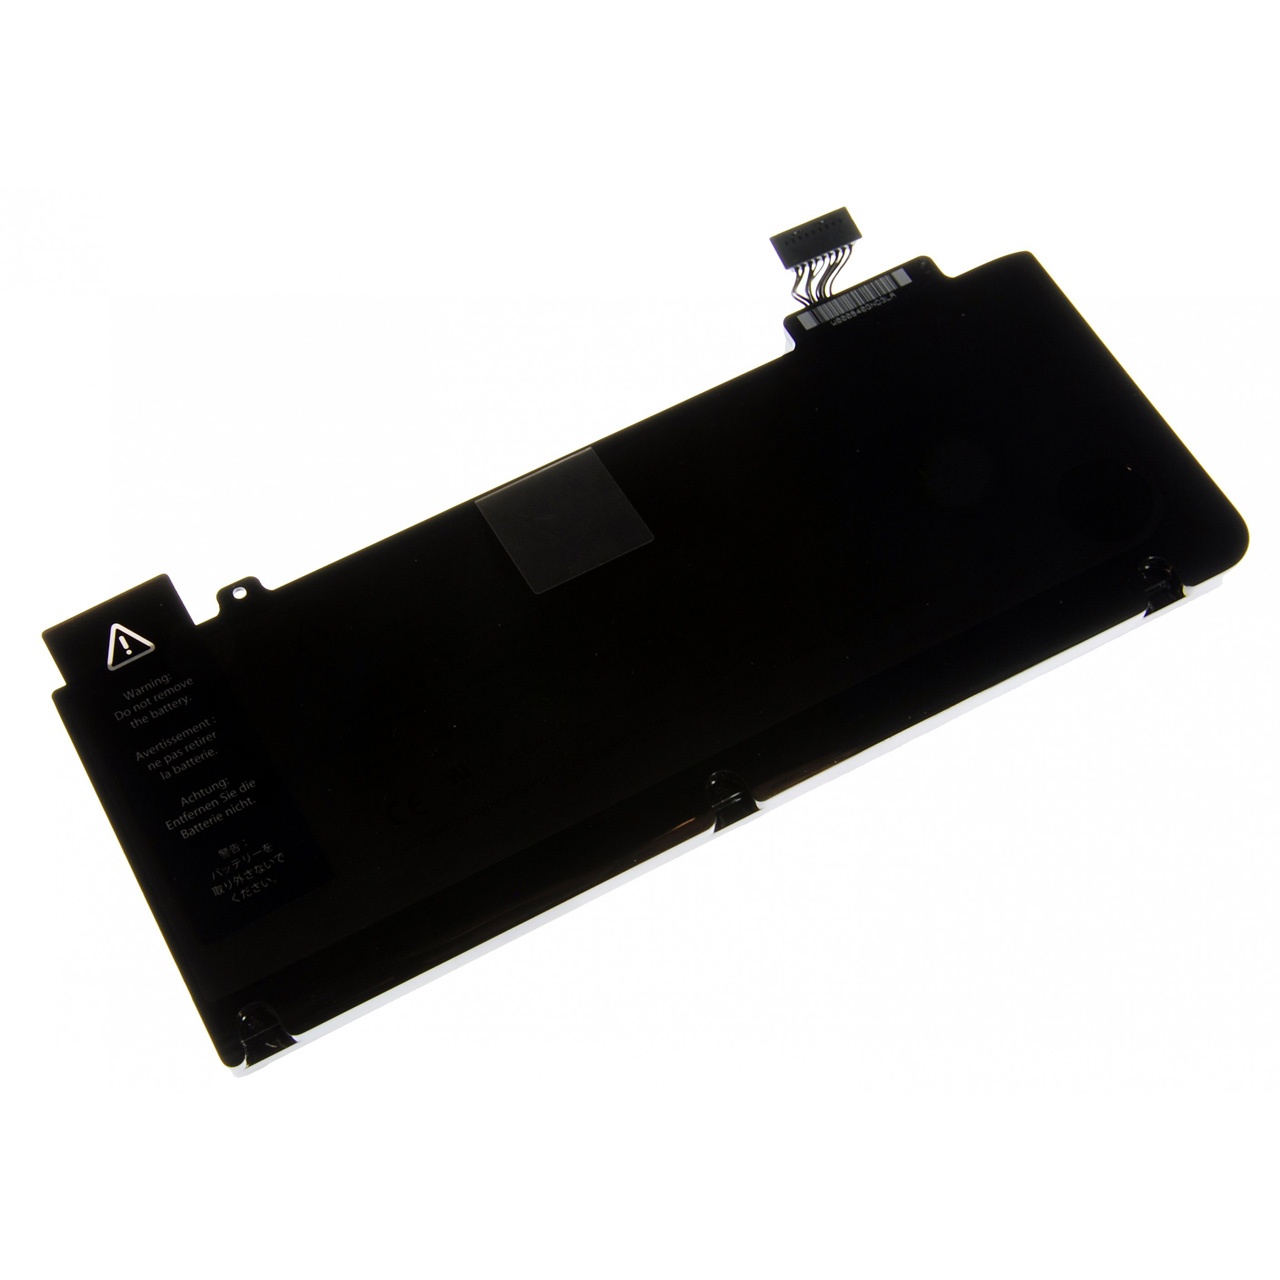 Macbook Pro A1278 Battery